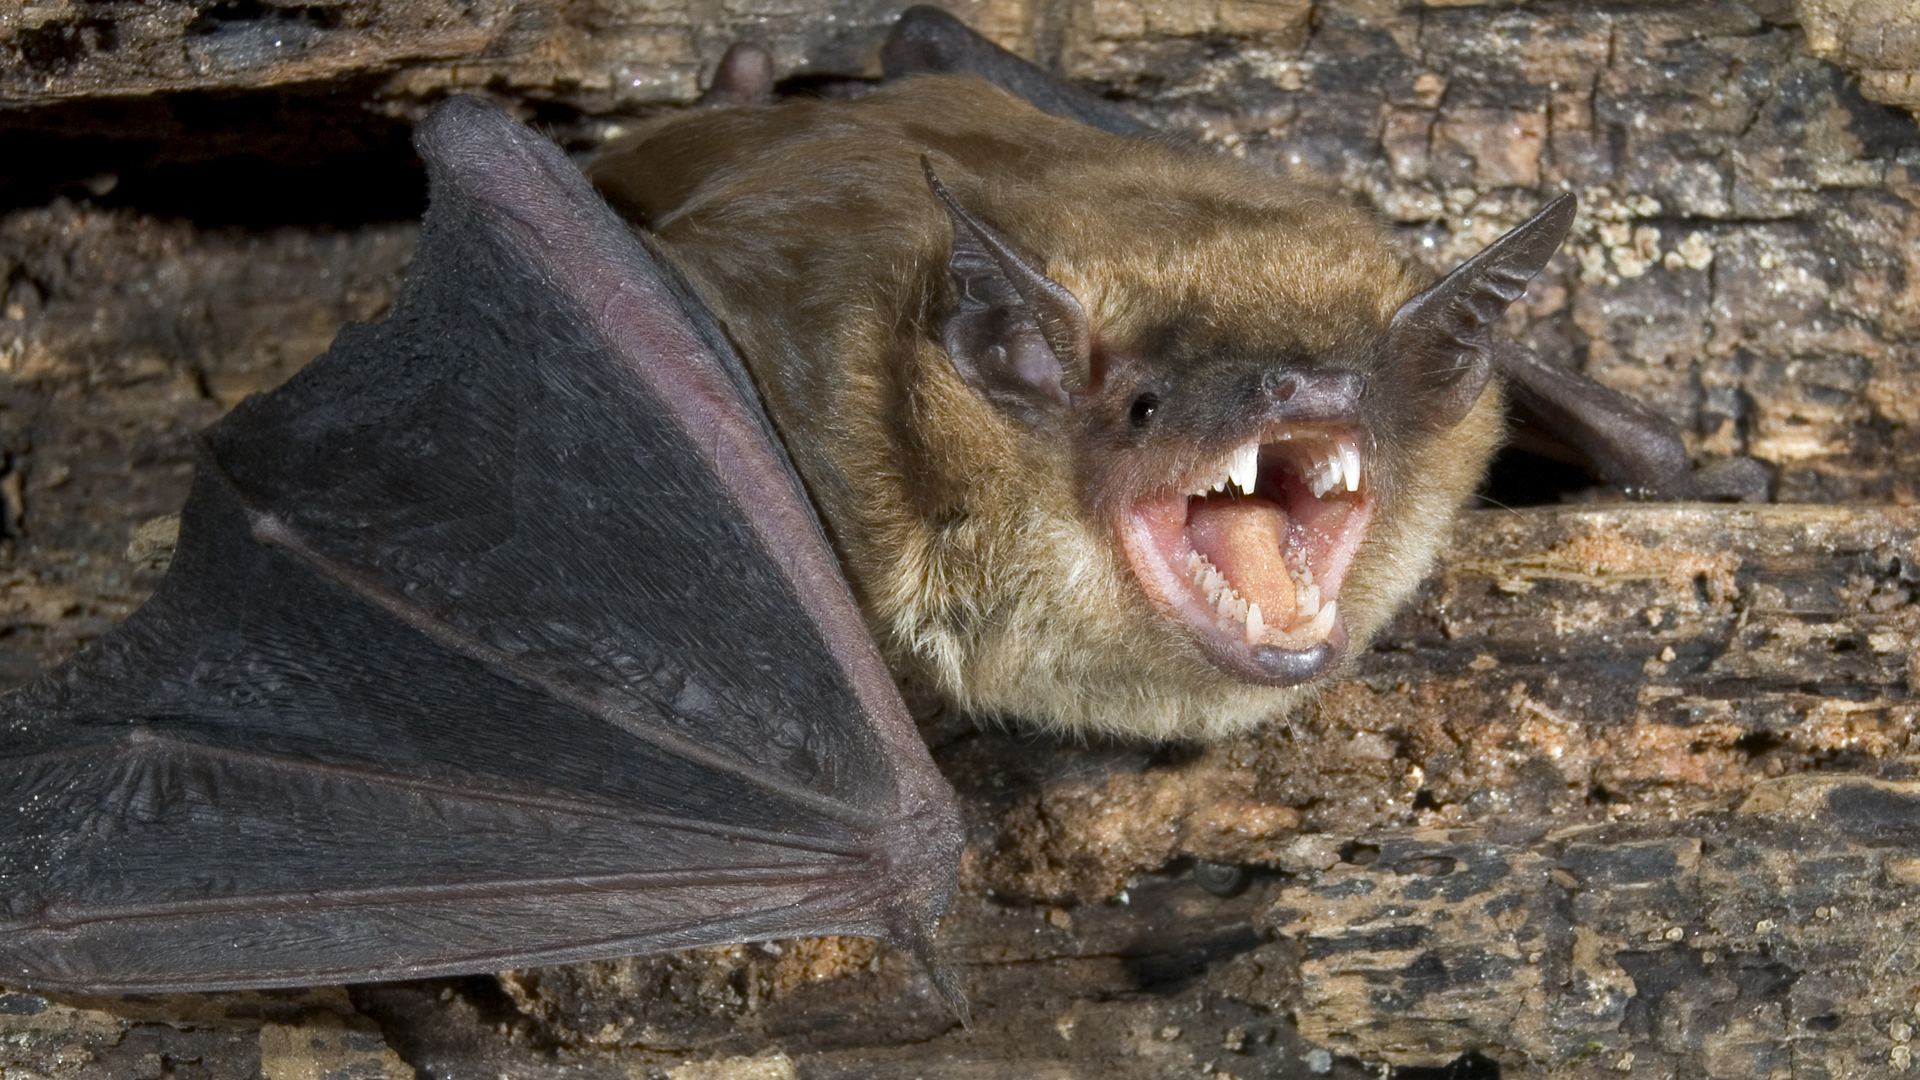 A brown bat is seen in this undated file photo. (Credit: iStock / Getty Images Plus)